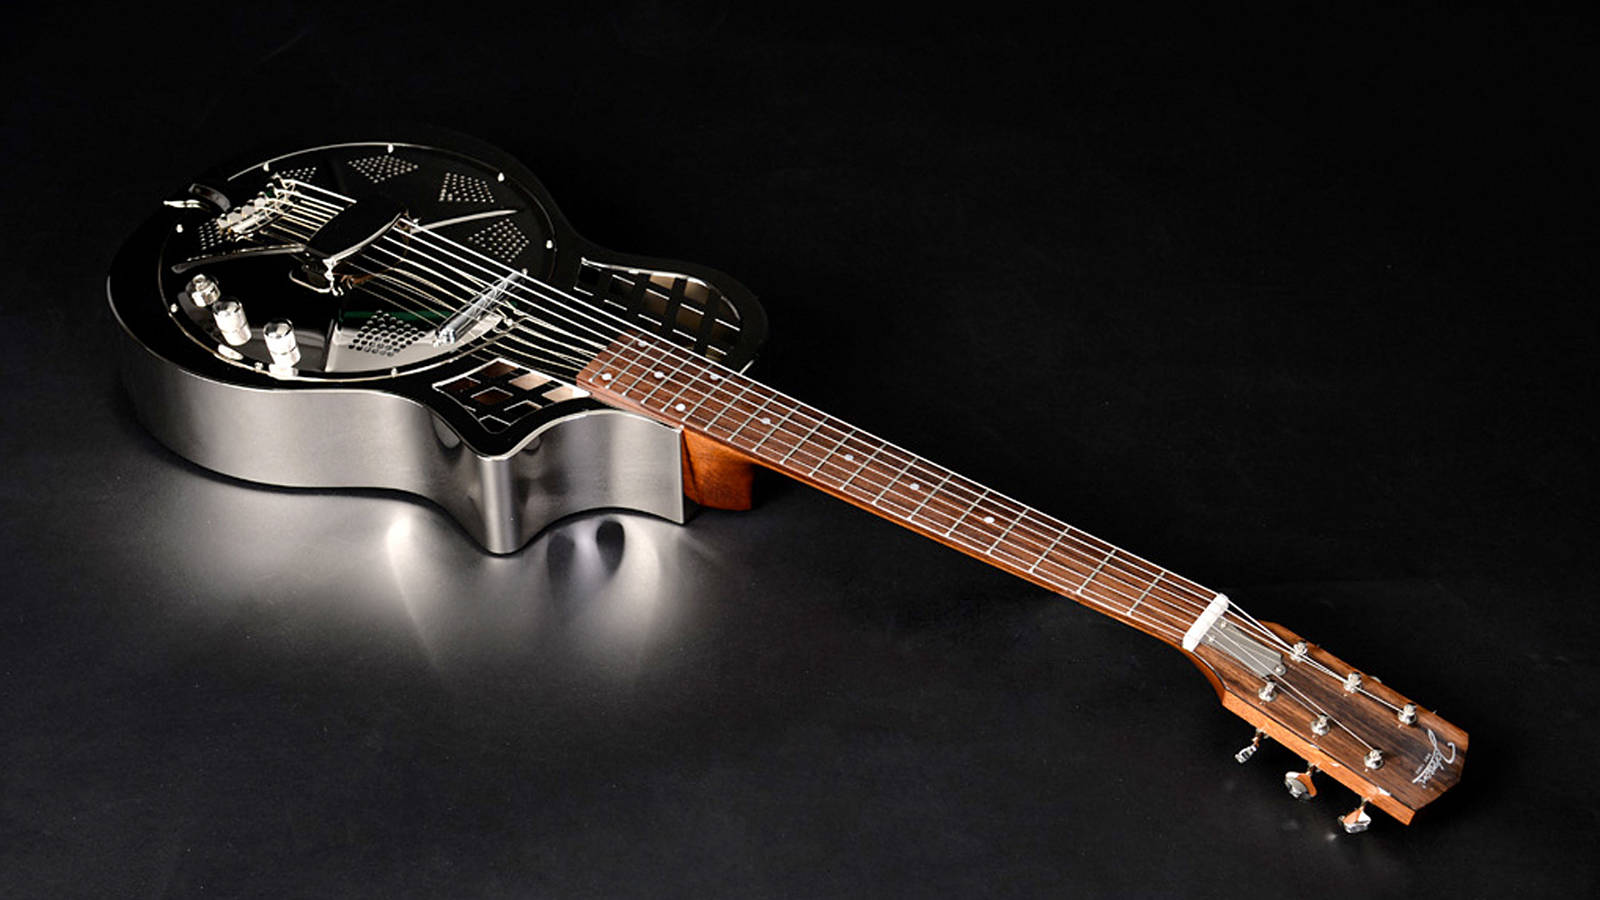 Johnson JR-994E Resonator Girtarre